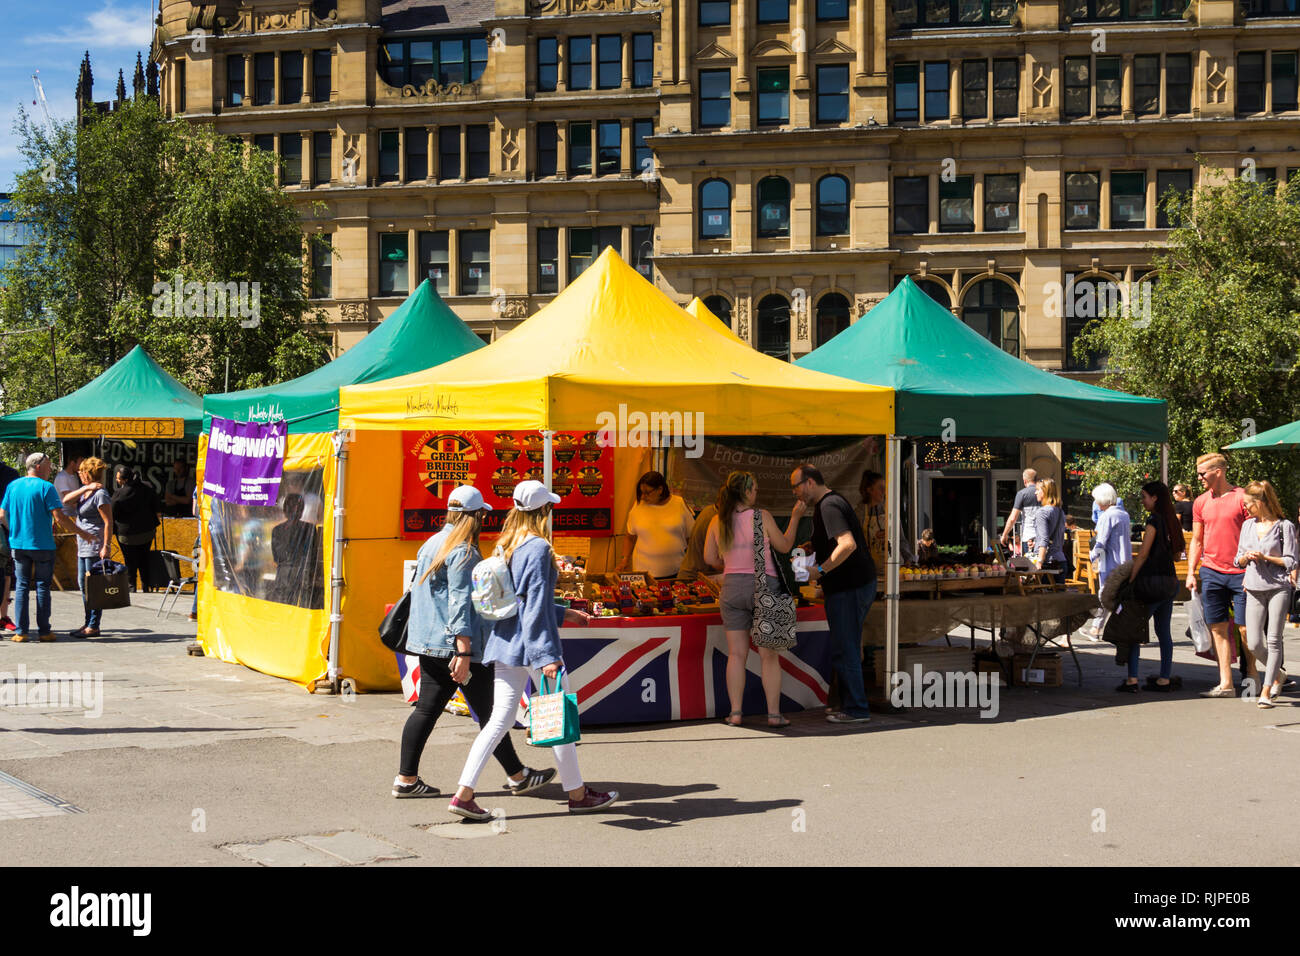 Street food market stalls in Exchange Square, Manchester, outside the old Corn Exchange. Stock Photo